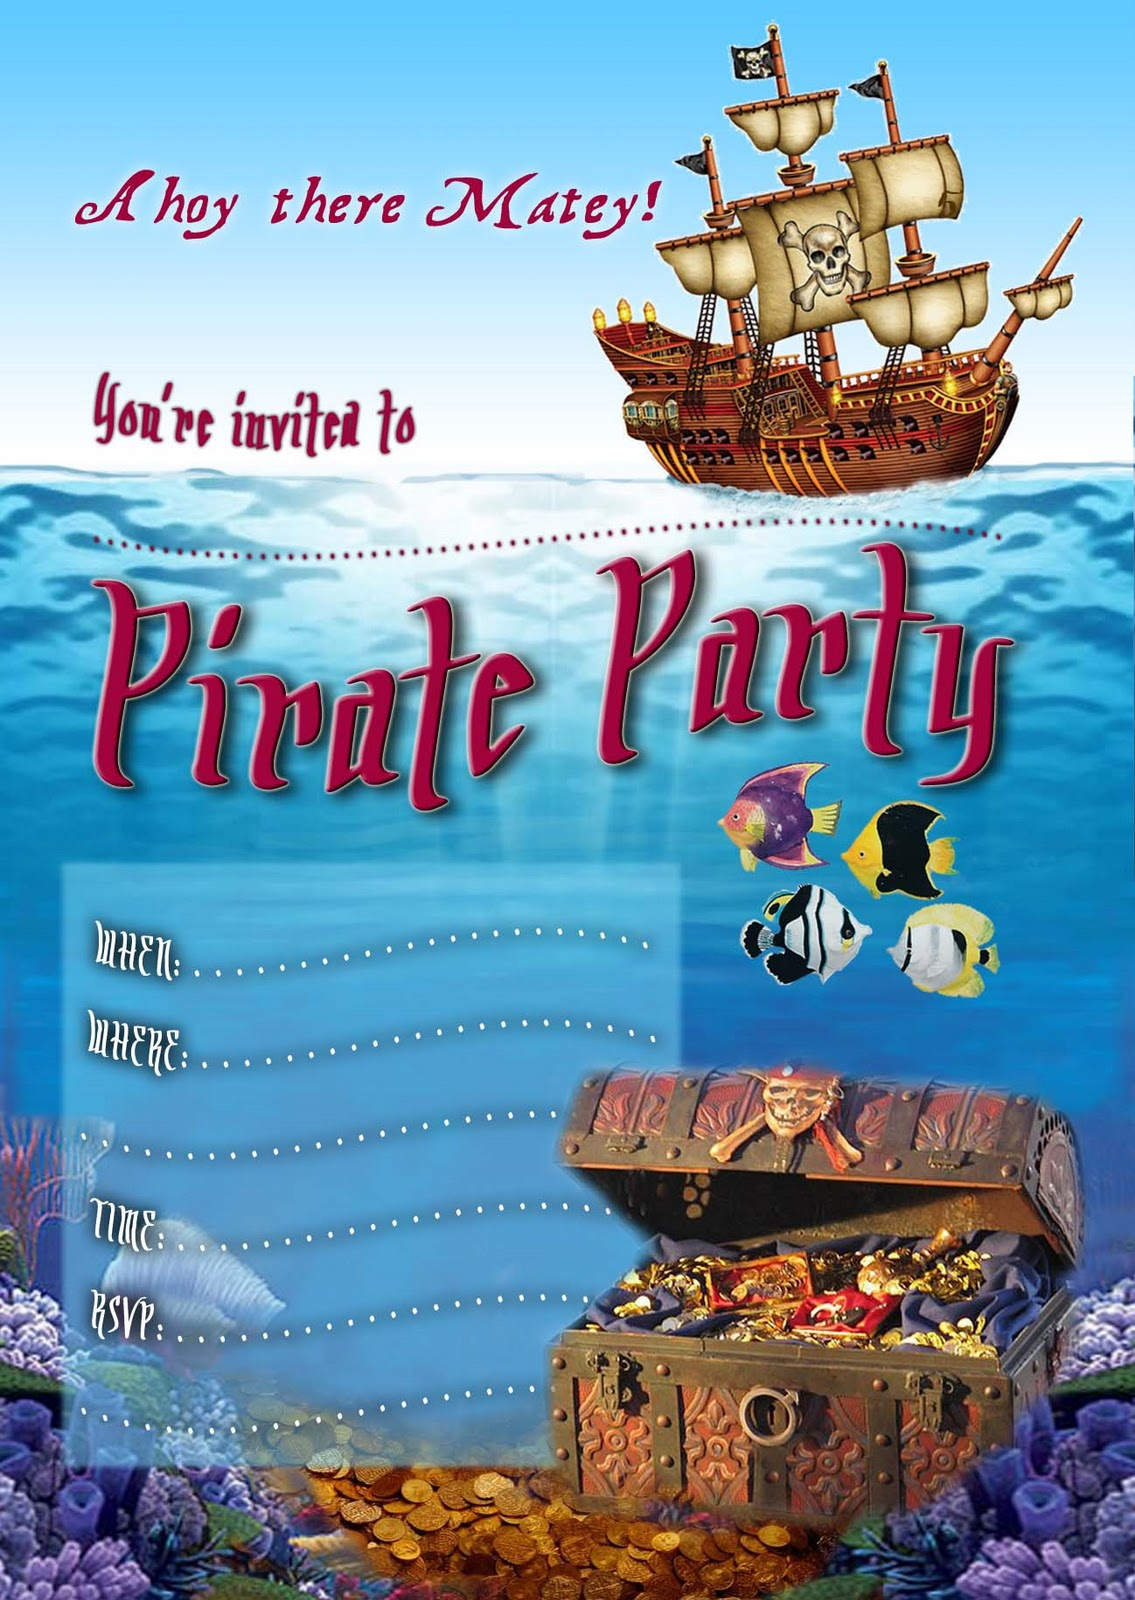 FREE Kids Party Invitations Pirate Party Invitation – Kids Pirate Party Invitations